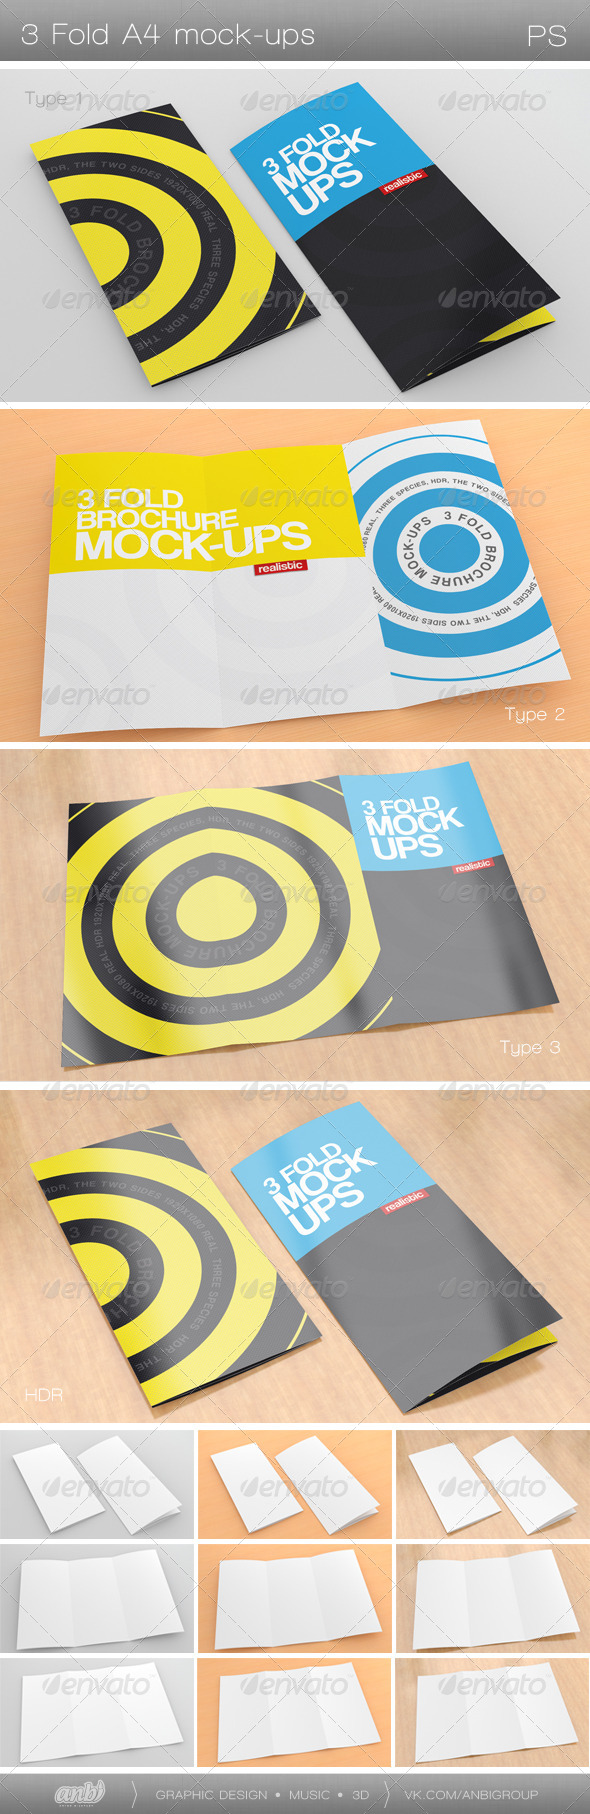 GraphicRiver 3 Fold A4 Mock-Ups 4489131